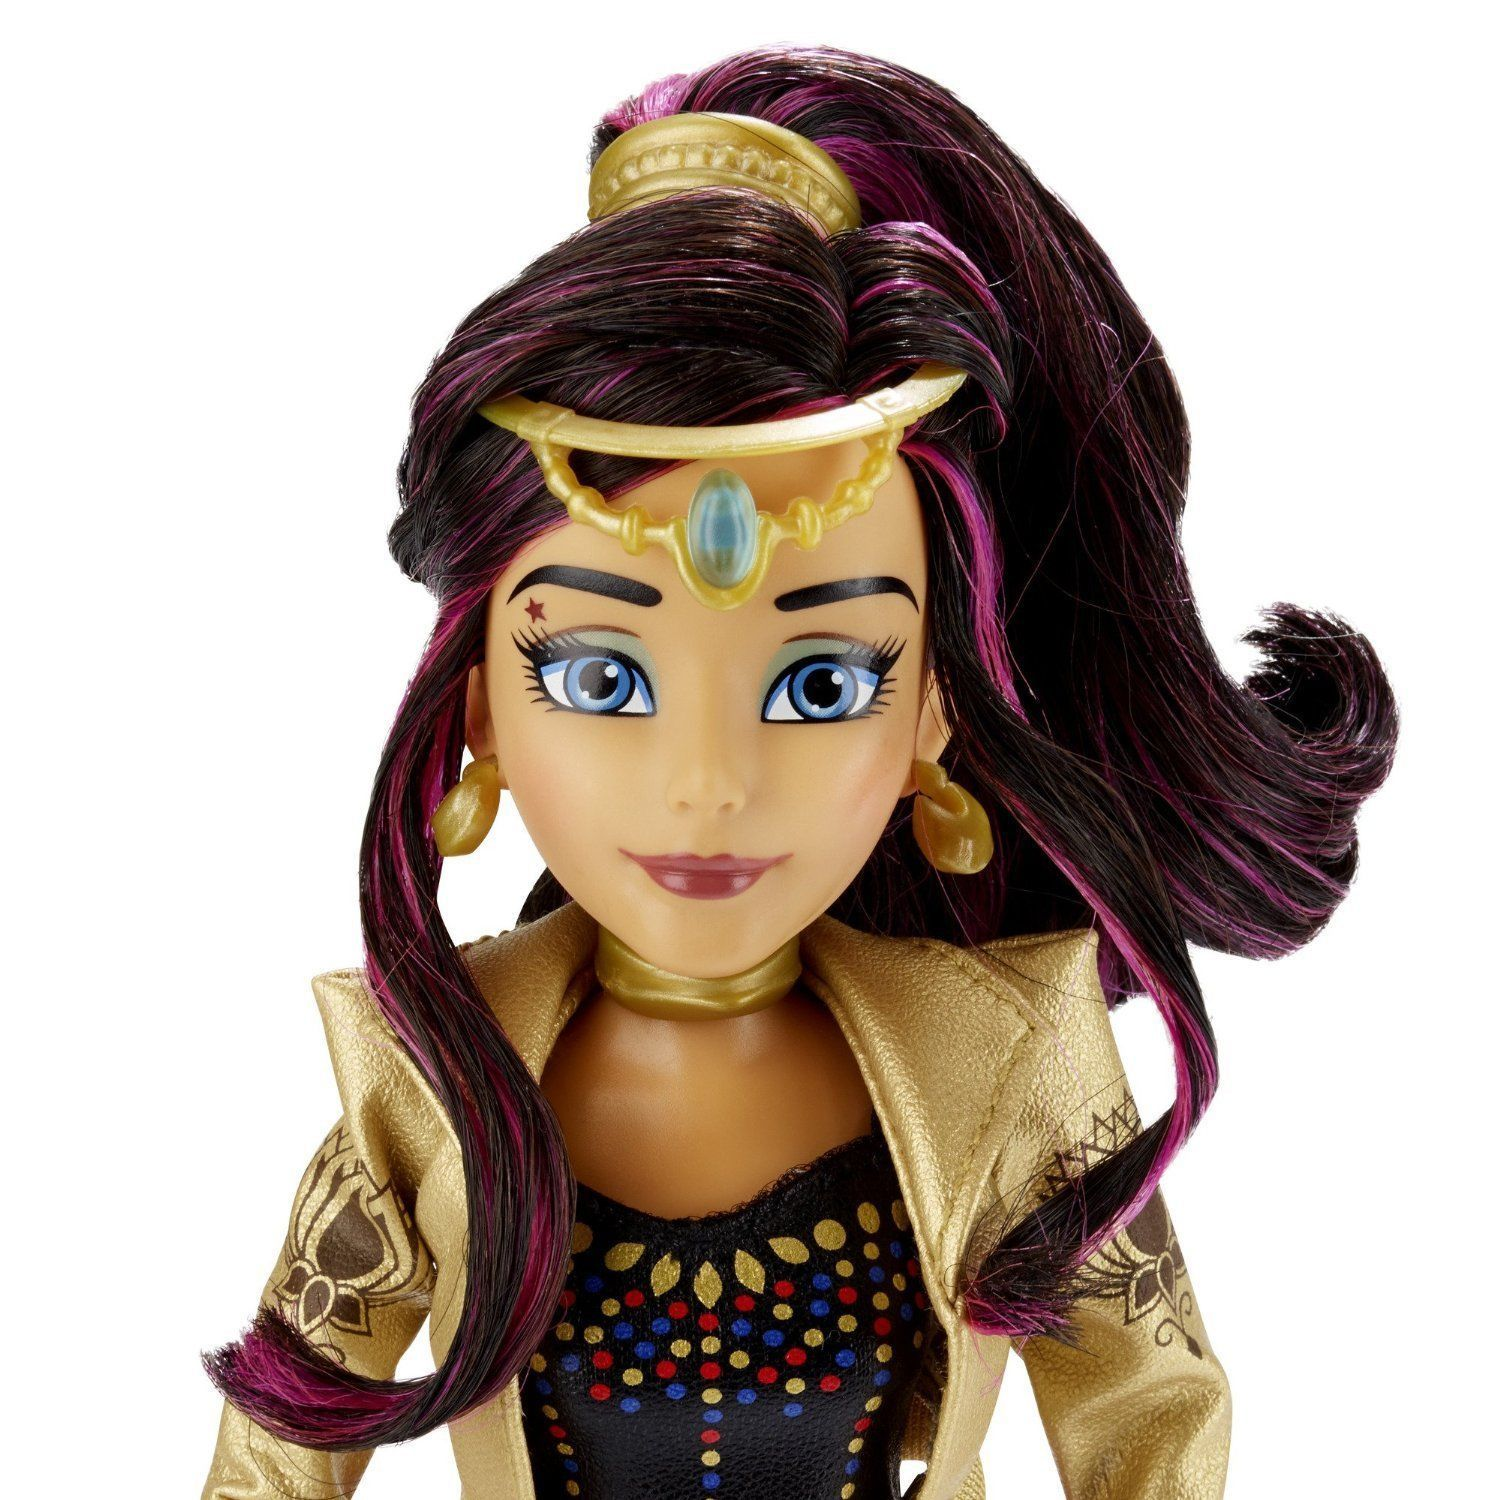 Image 1 of Disney Descendants Auradon Genie Chic Jordan Doll